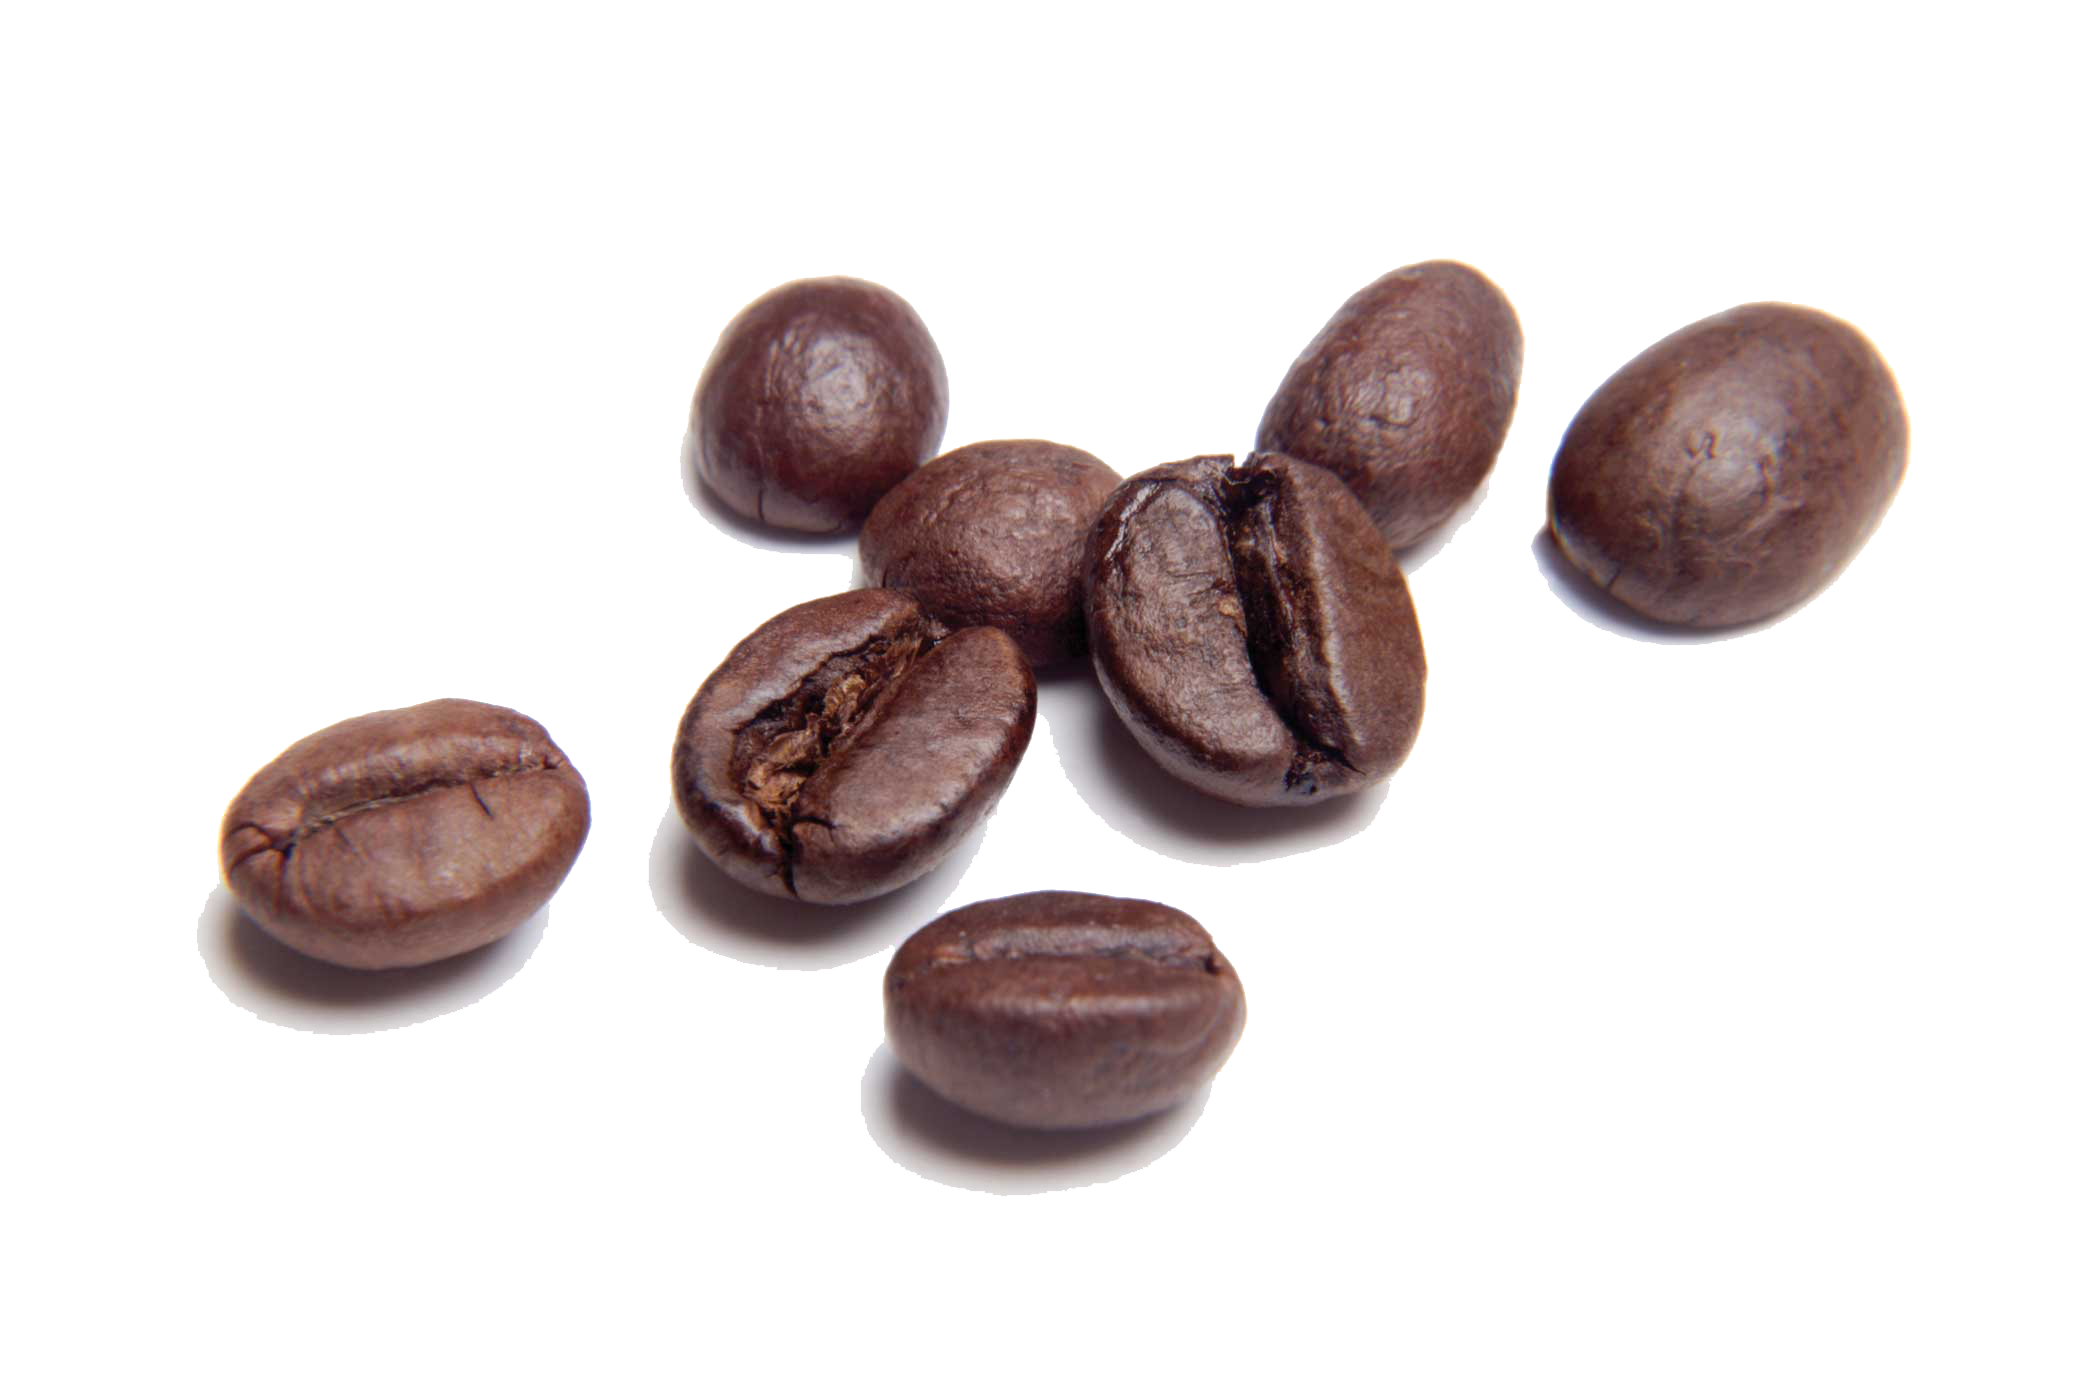 Coffee png free images. Beans vector transparent background svg royalty free library